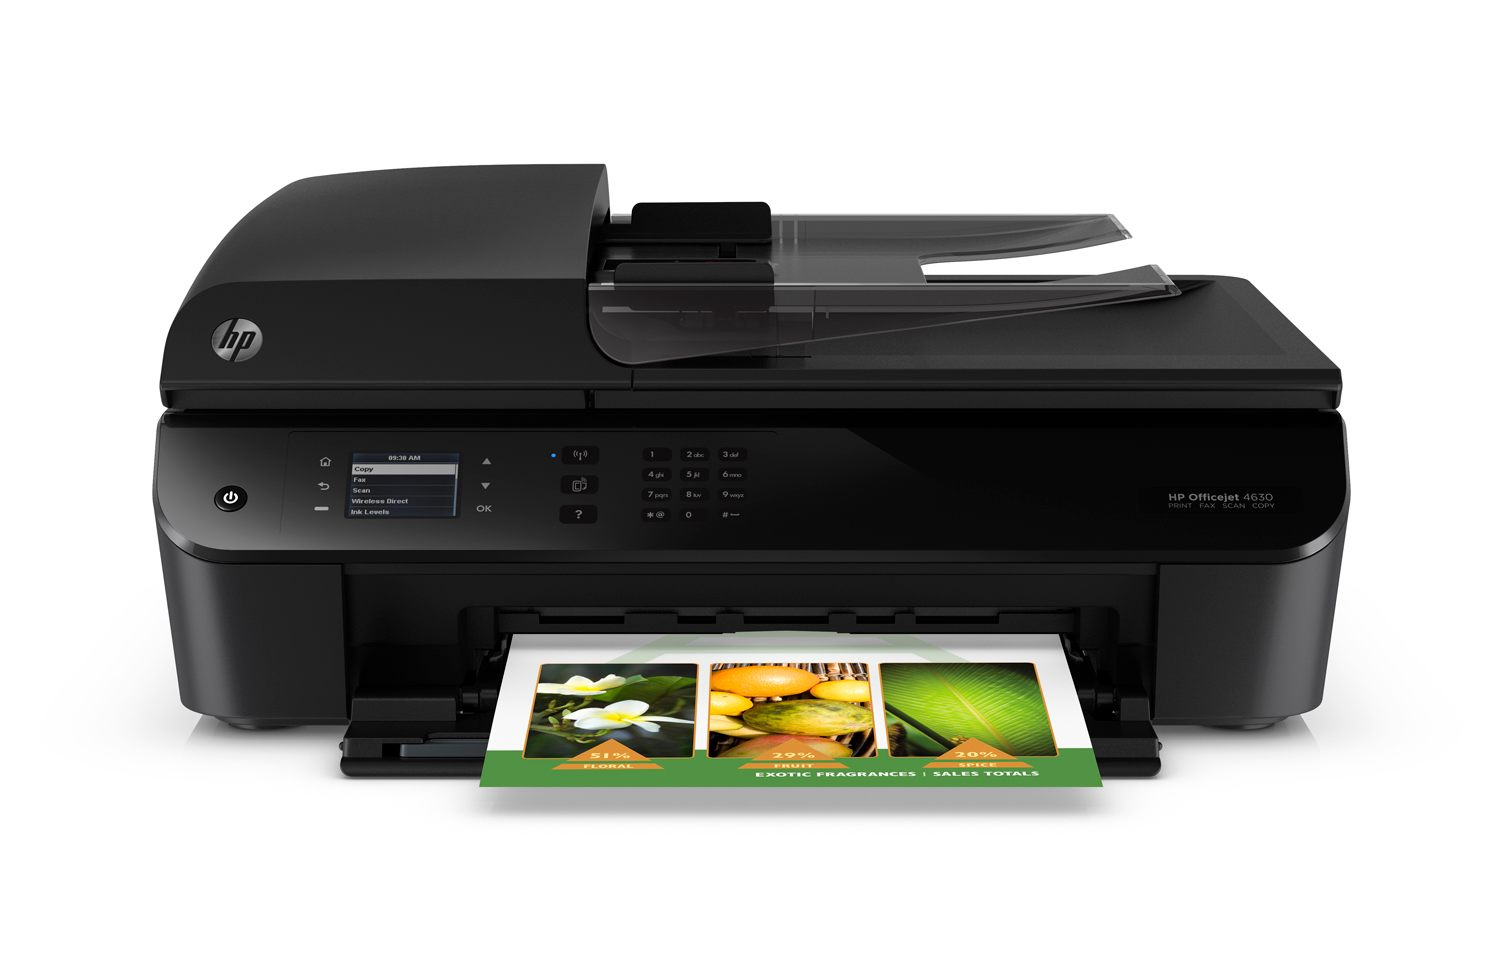 HP OFFICEJET 4630 E-ALL-IN-ONE PRINTER DOWNLOAD DRIVERS